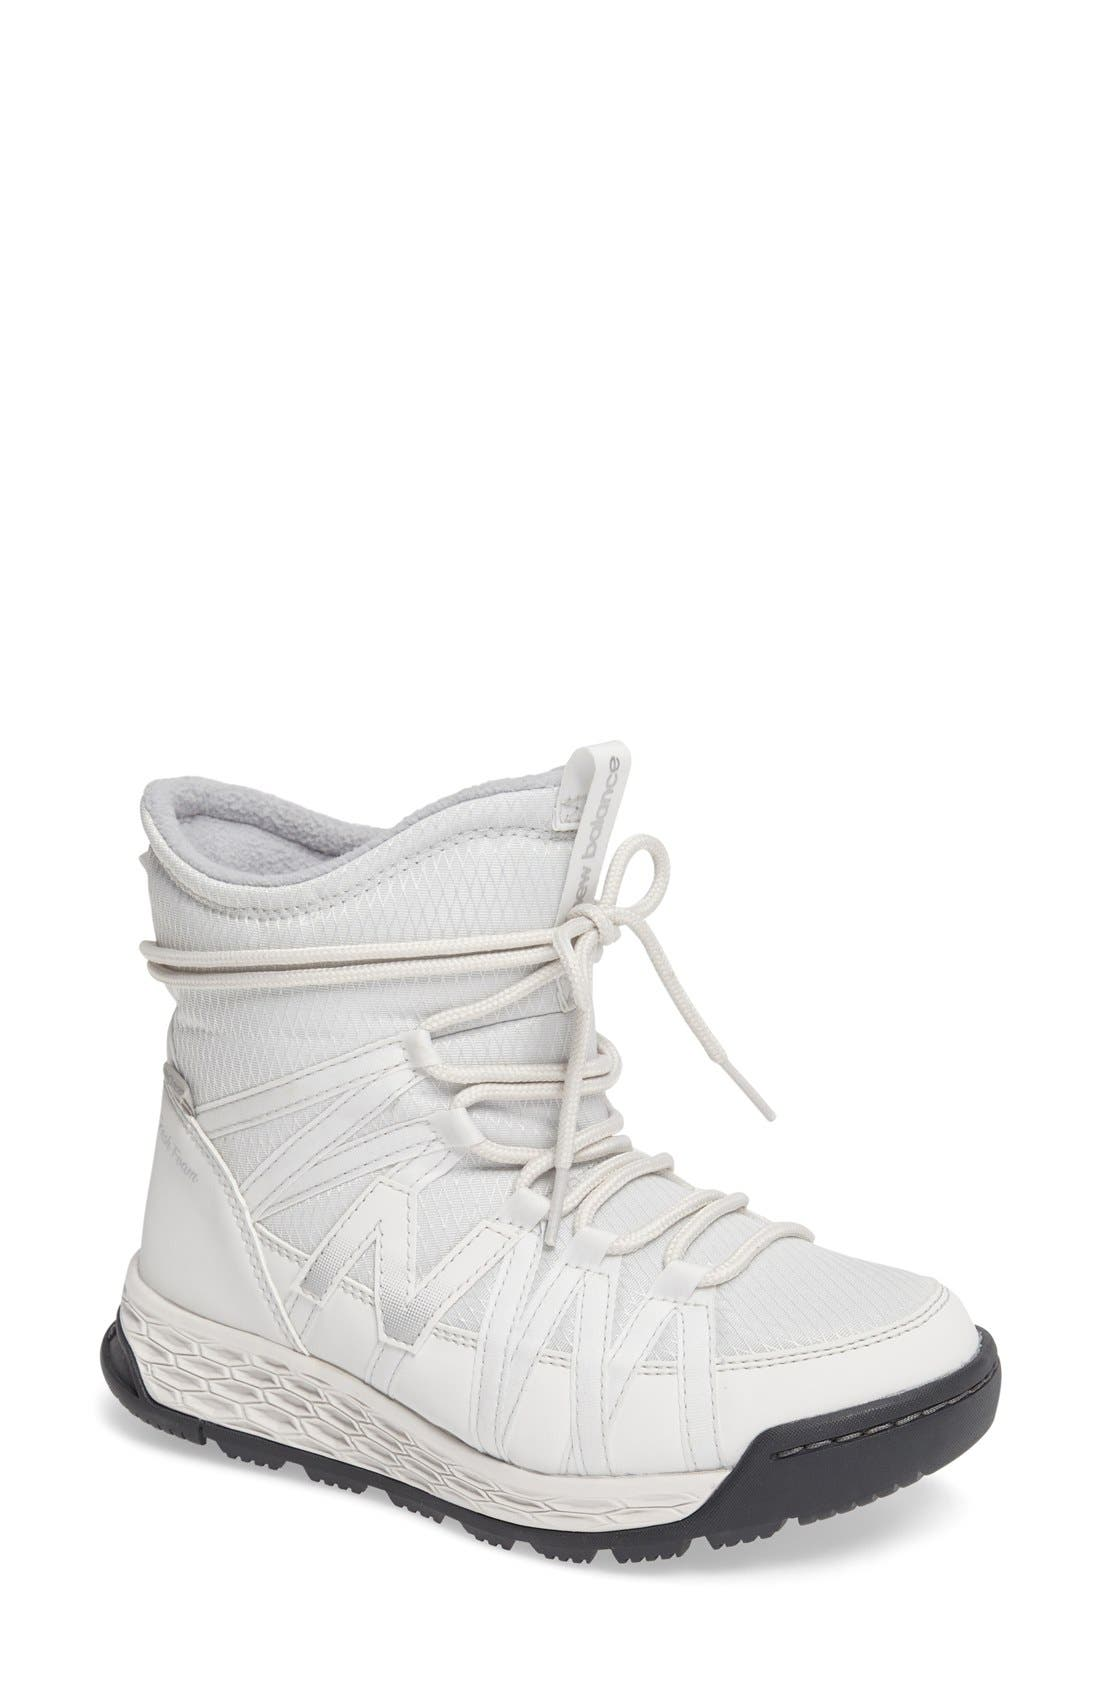 Alternate Image 1 Selected - New Balance Q416 Weatherproof Snow Boot (Women)